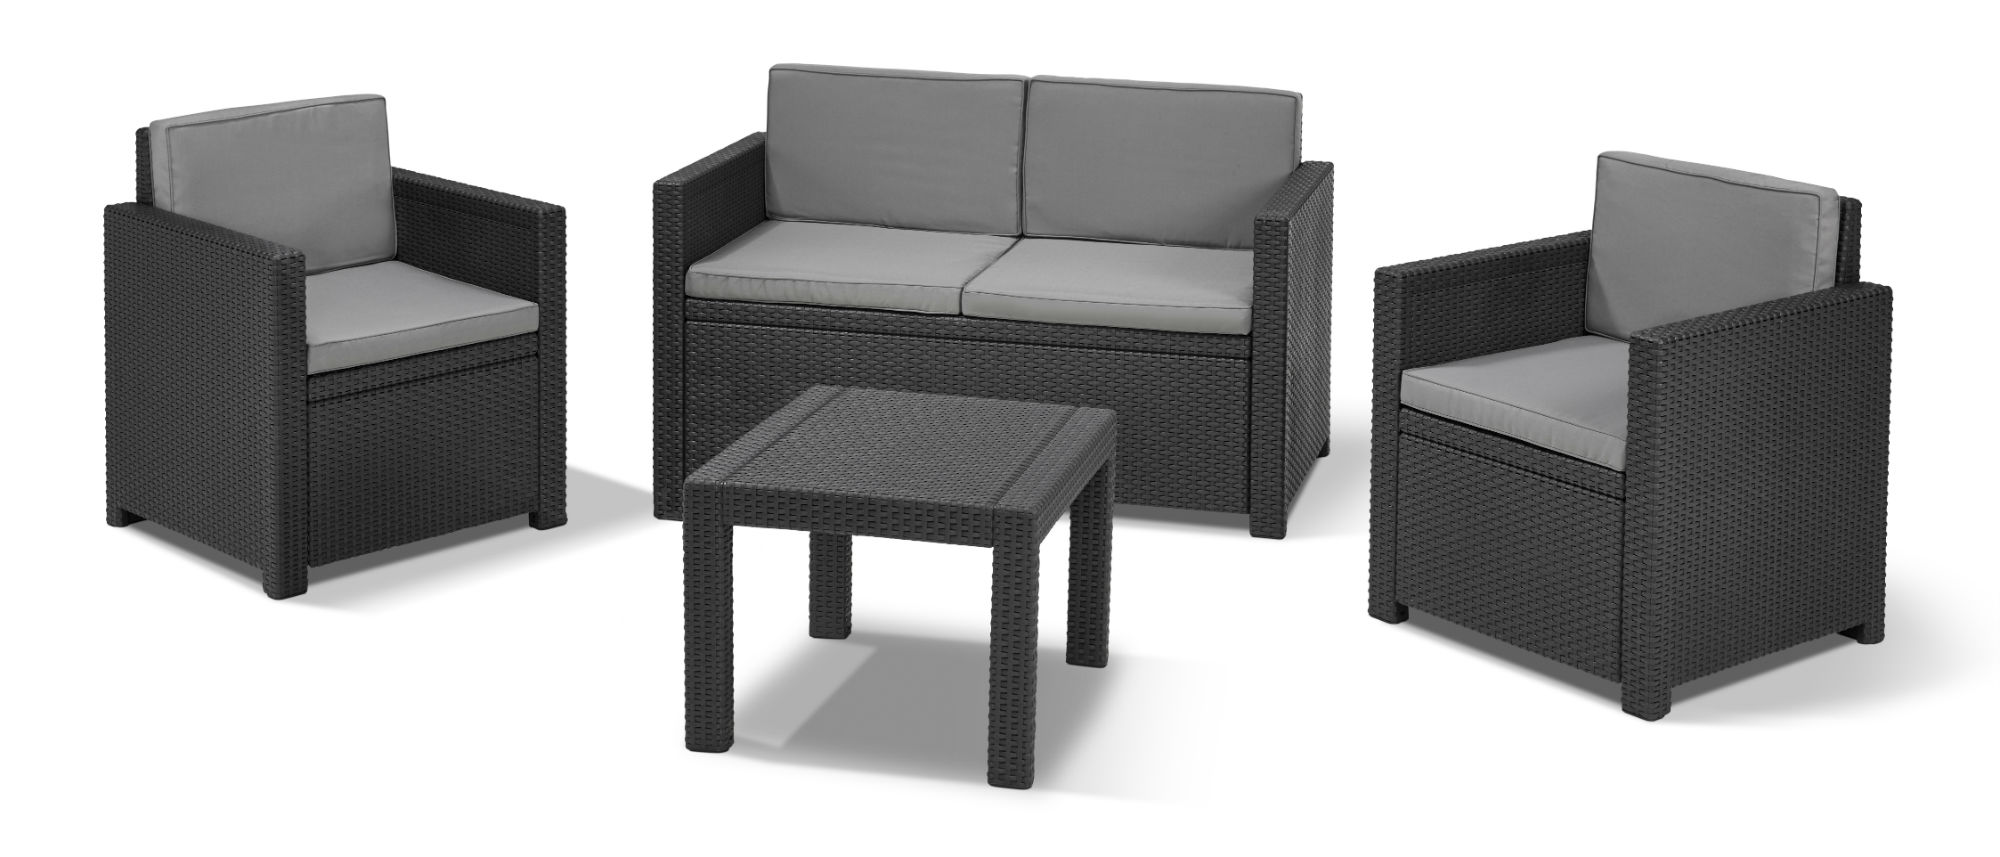 allibert victoria lounge set graphite allibert. Black Bedroom Furniture Sets. Home Design Ideas